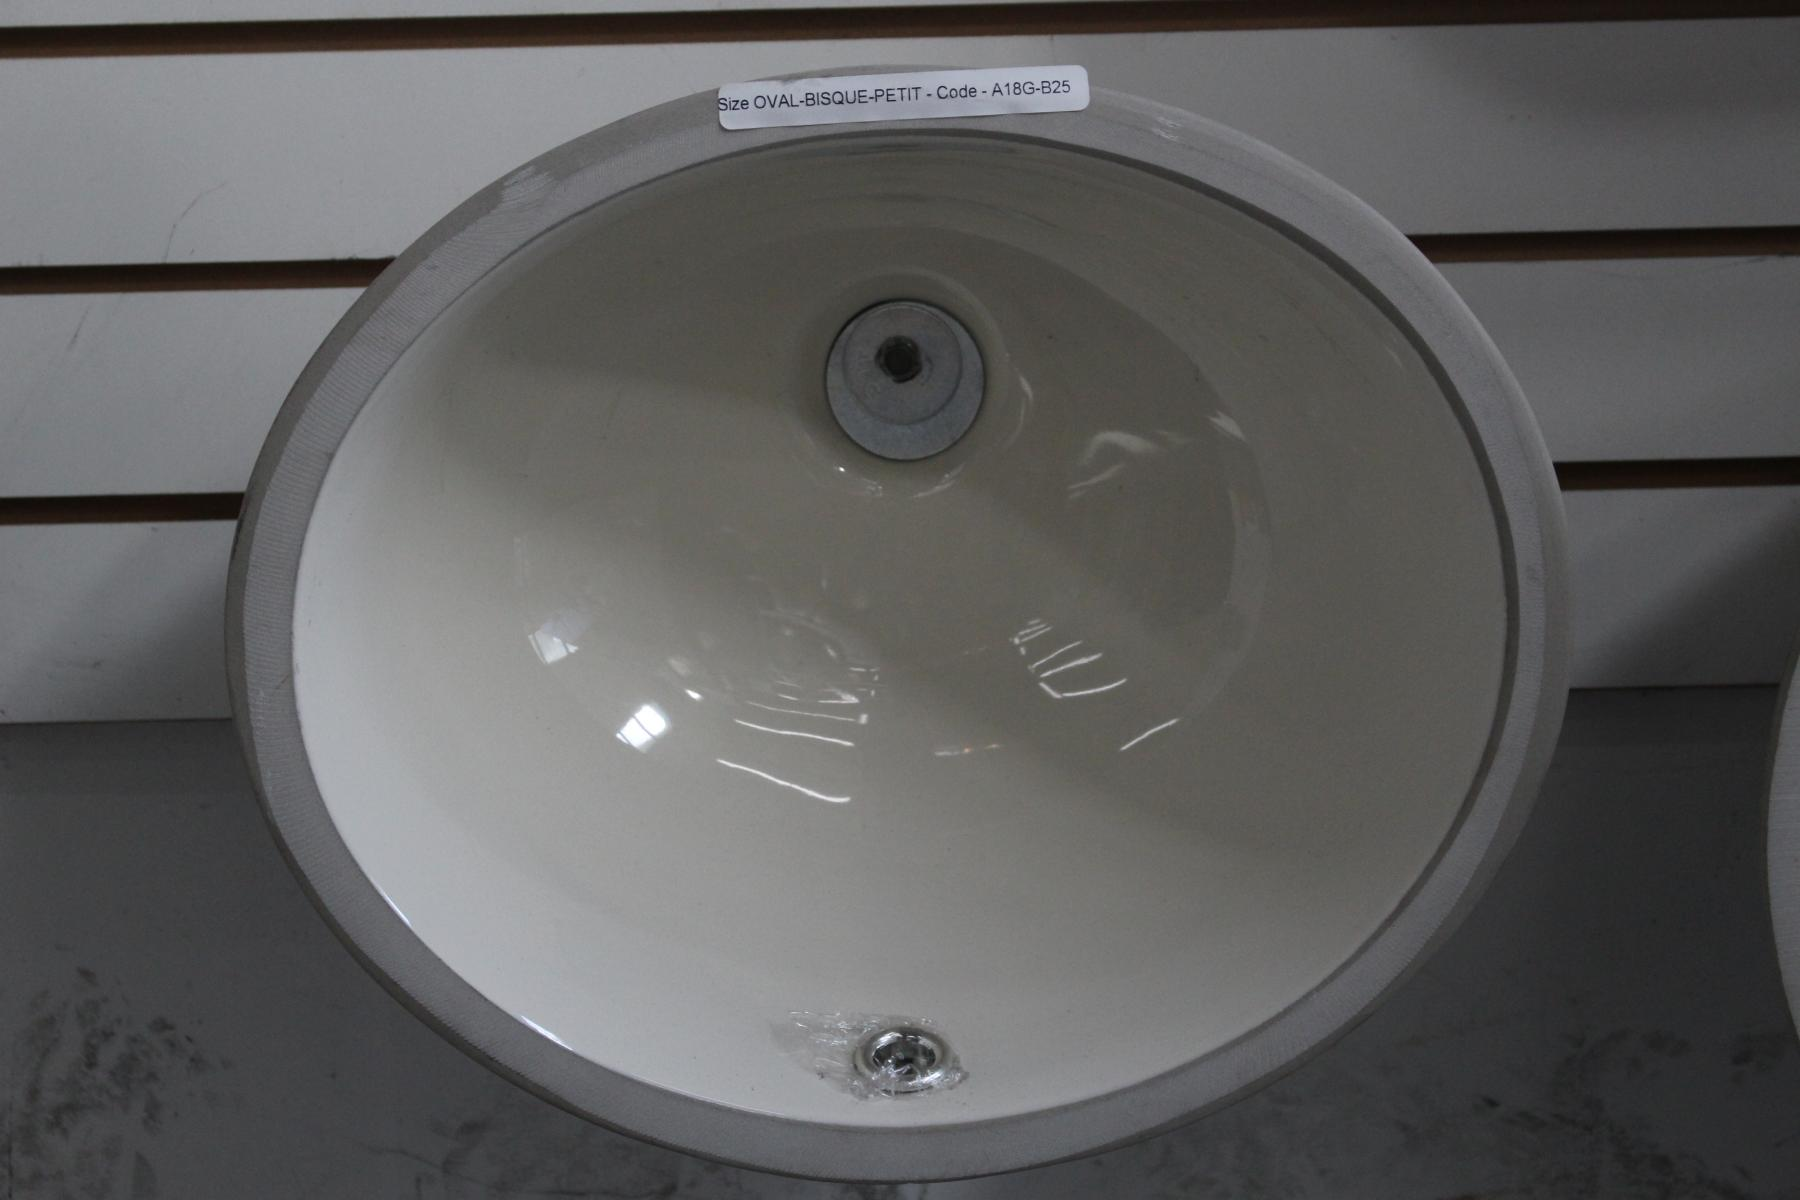 Oval Vanity Sink - Bisque Petit